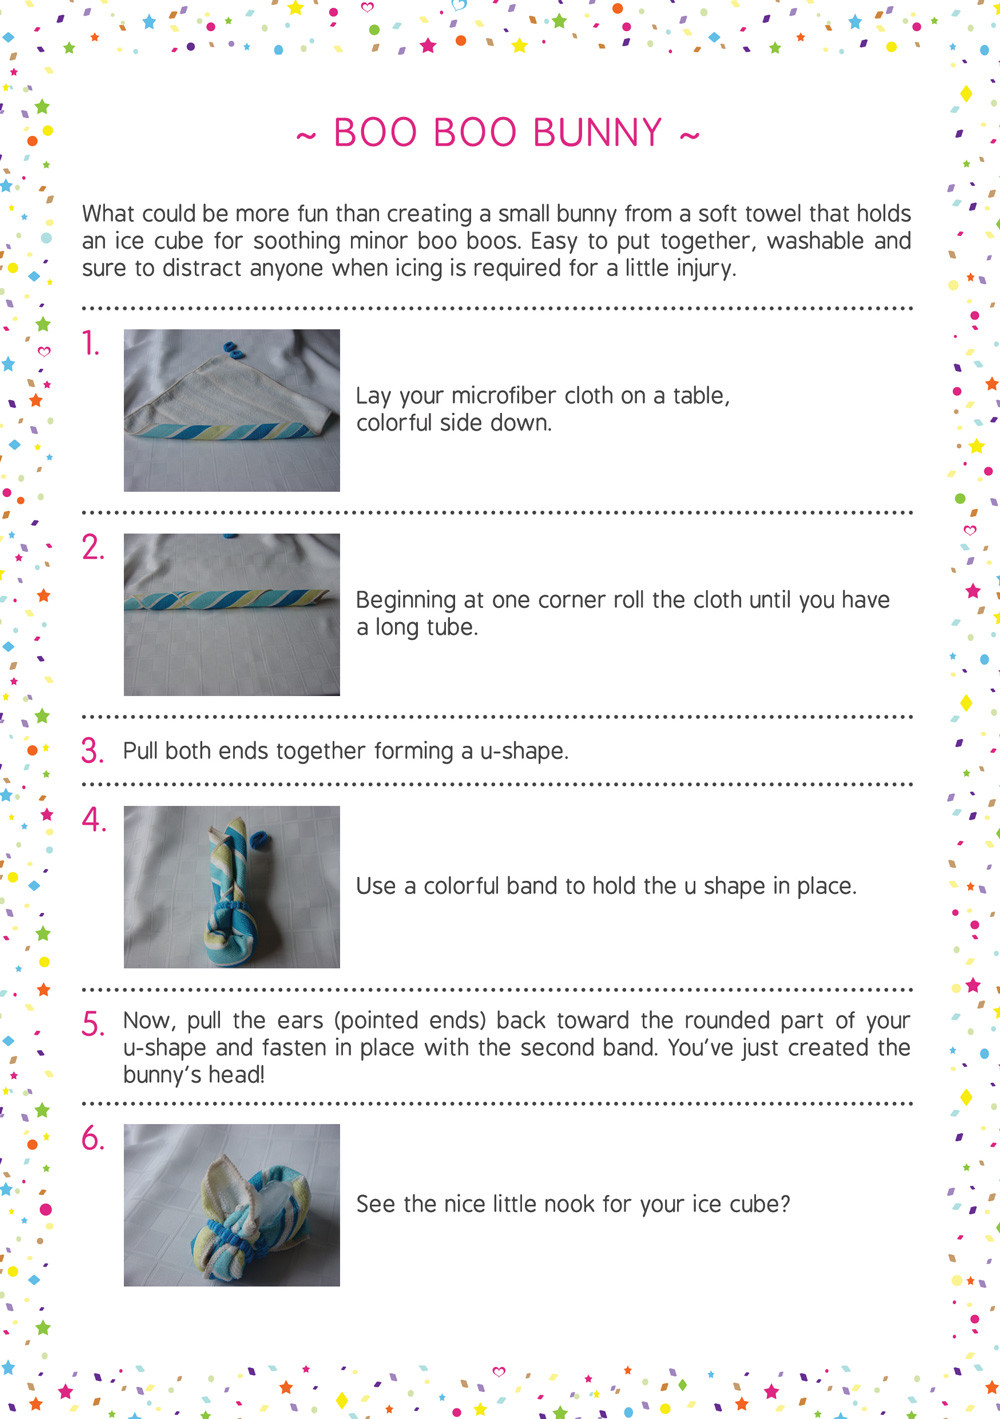 THB-Boo-Boo-Bunny-leaflet-A5-PREVIEW.jpg